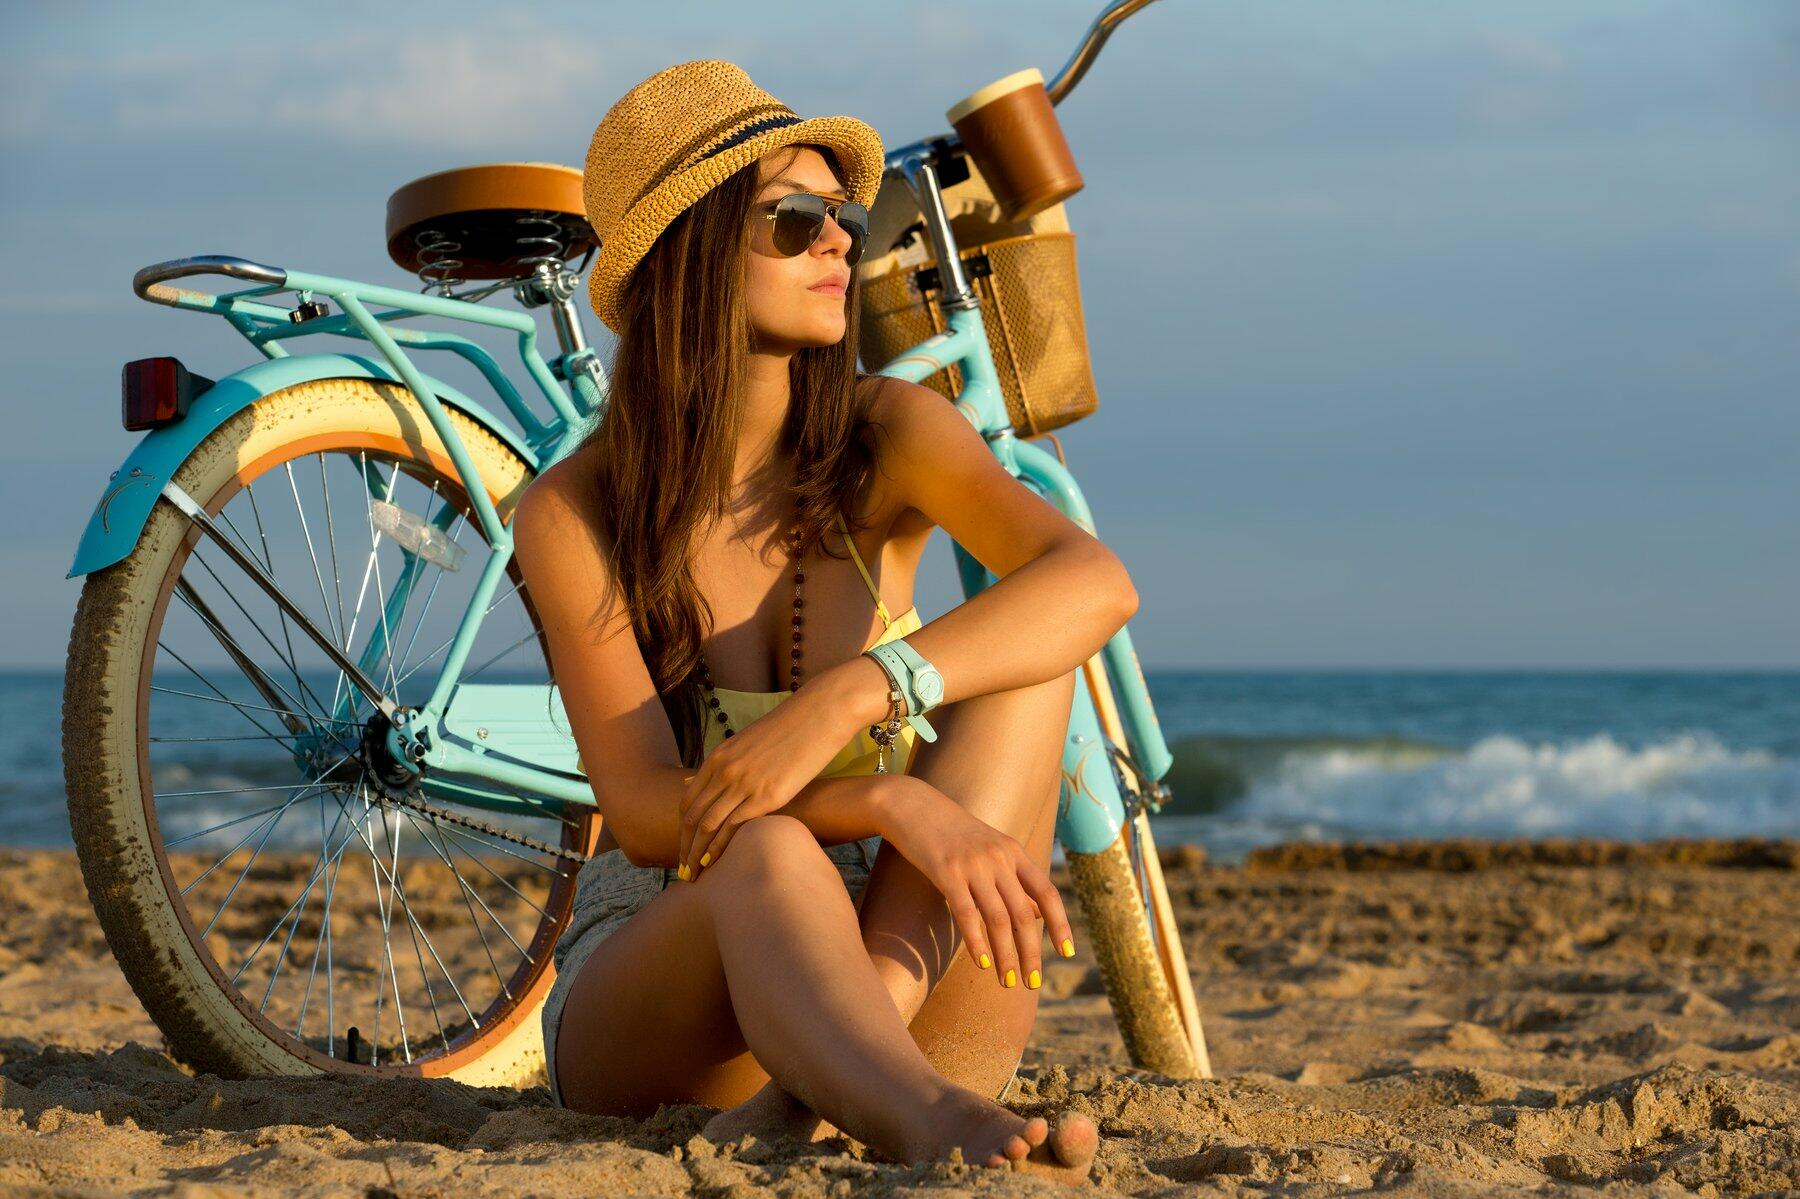 Girl on a beach with her bike